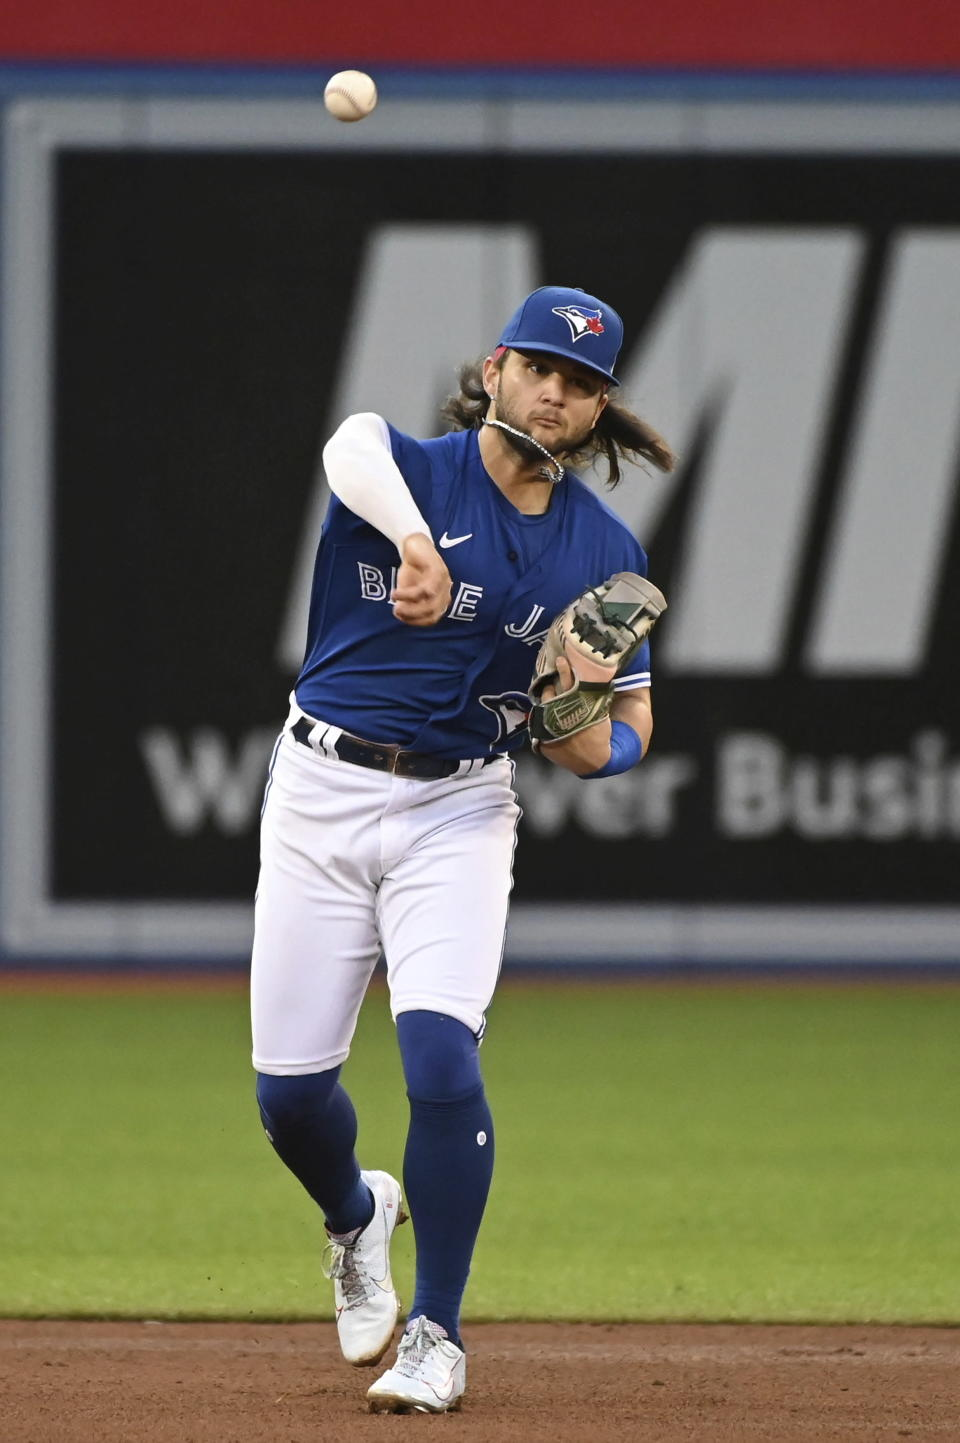 Toronto Blue Jays shortstop Bo Bichette throws to first base to put out Cleveland Indians' Oscar Mercado during the fifth inning of a baseball game Thursday, Aug. 5, 2021, in Toronto. (Jon Blacker/The Canadian Press via AP)